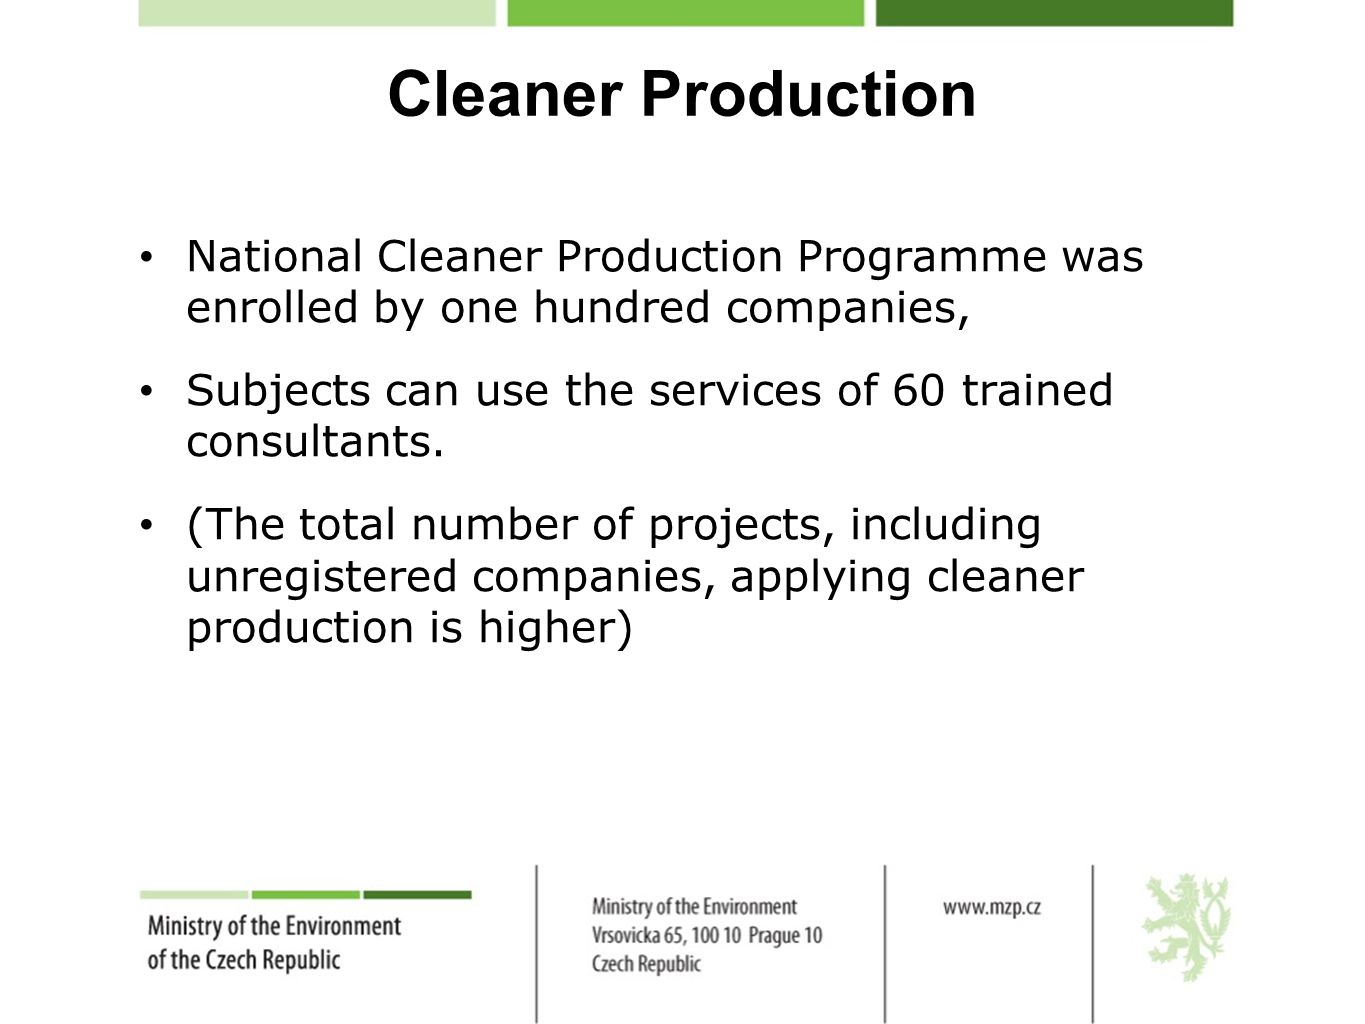 Cleaner Production National Cleaner Production Programme was enrolled by one hundred companies, Subjects can use the services of 60 trained consultants.